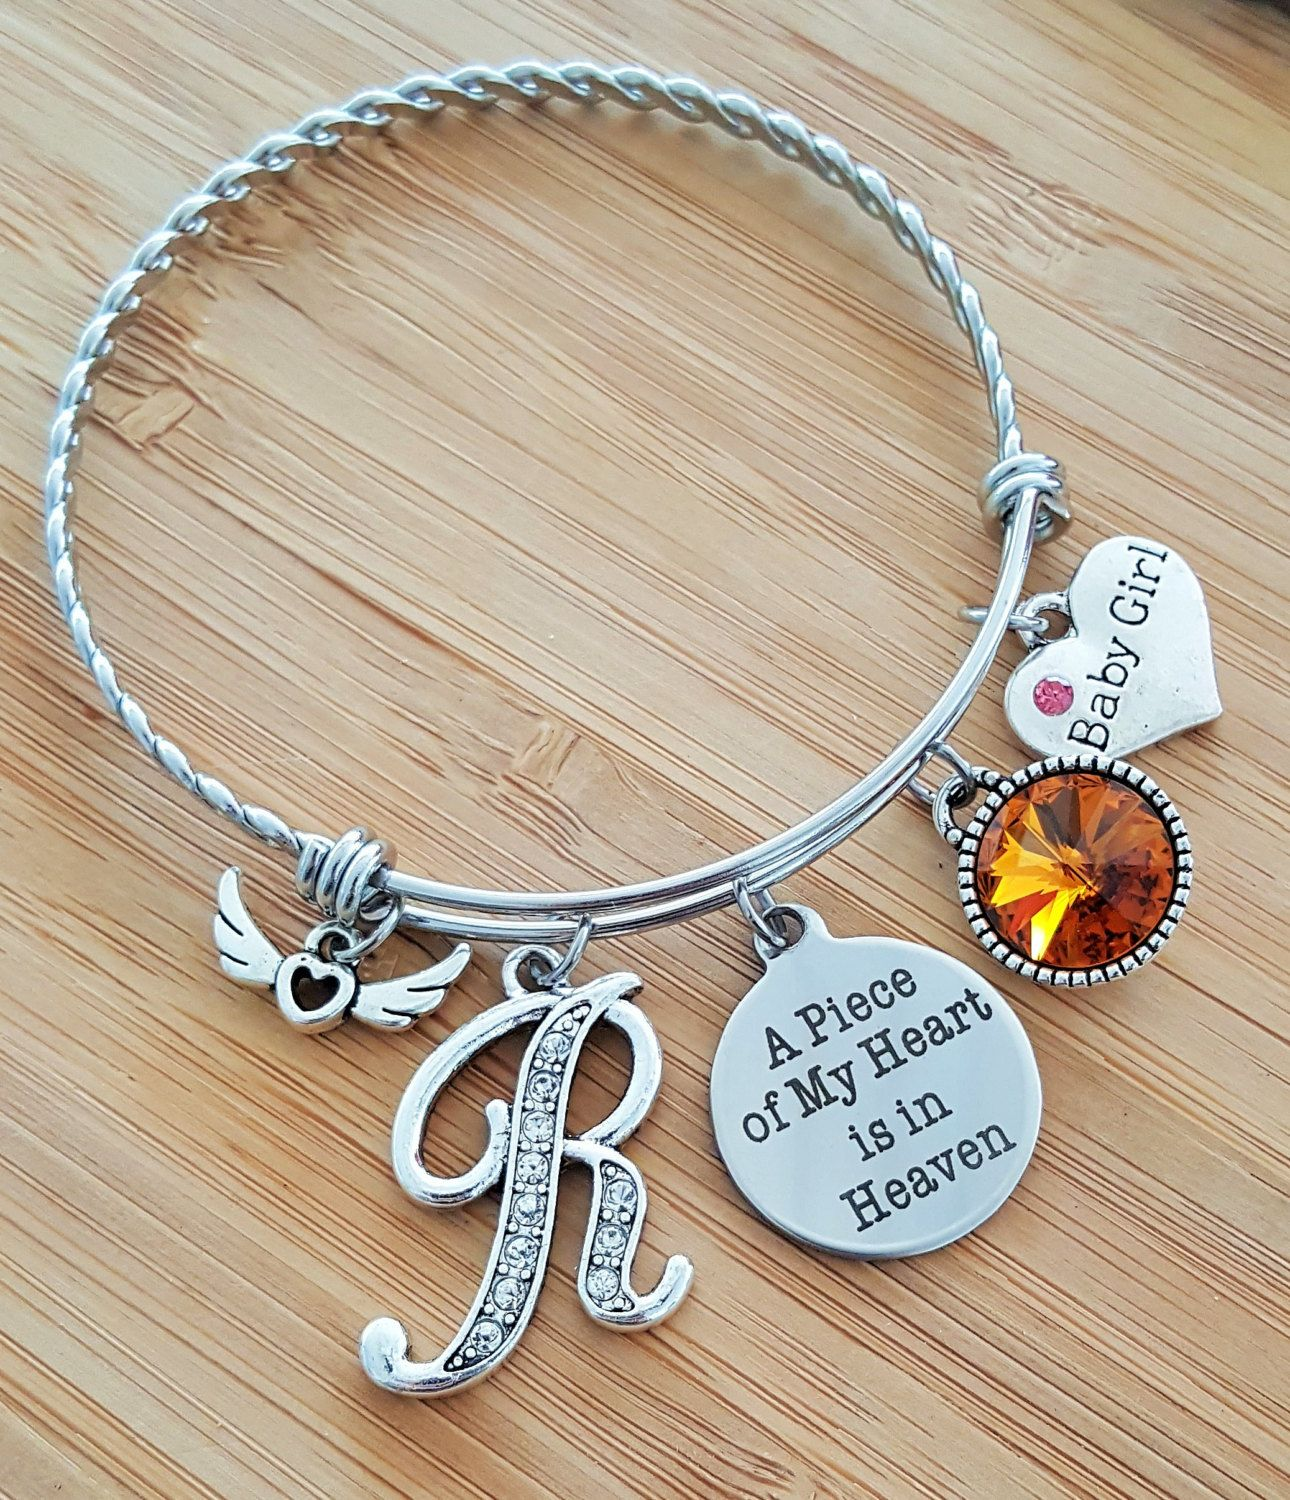 Miscarriage Bracelet Stillbirth Gift Stillborn Sympathy In Memory Of Baby Loss A Child By Kainsboutique On Etsy